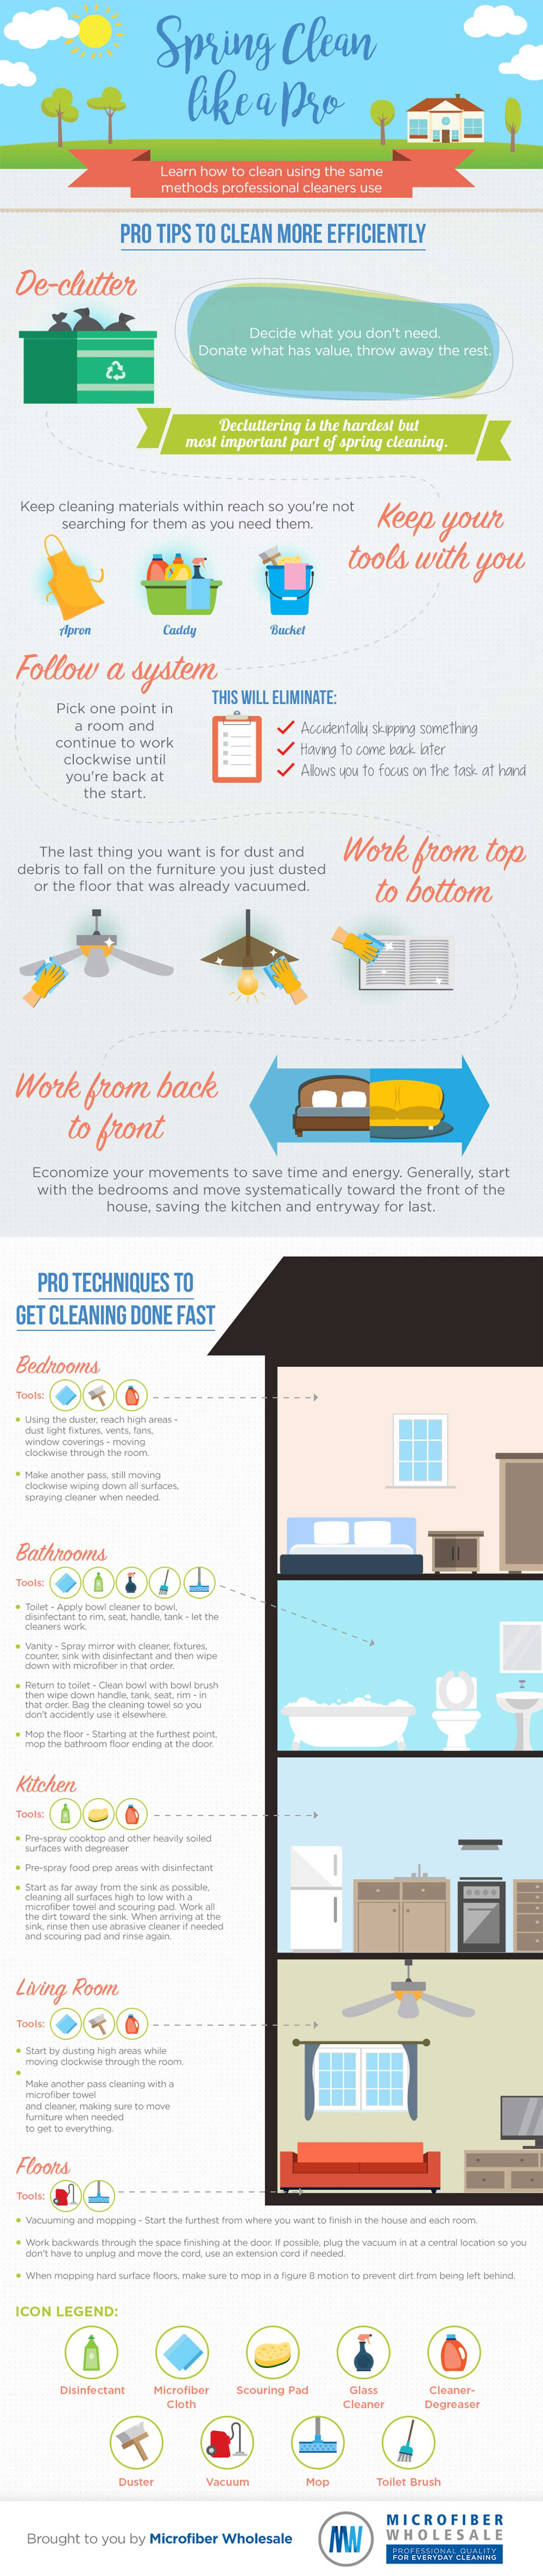 Spring Clean Like A Pro Infographic